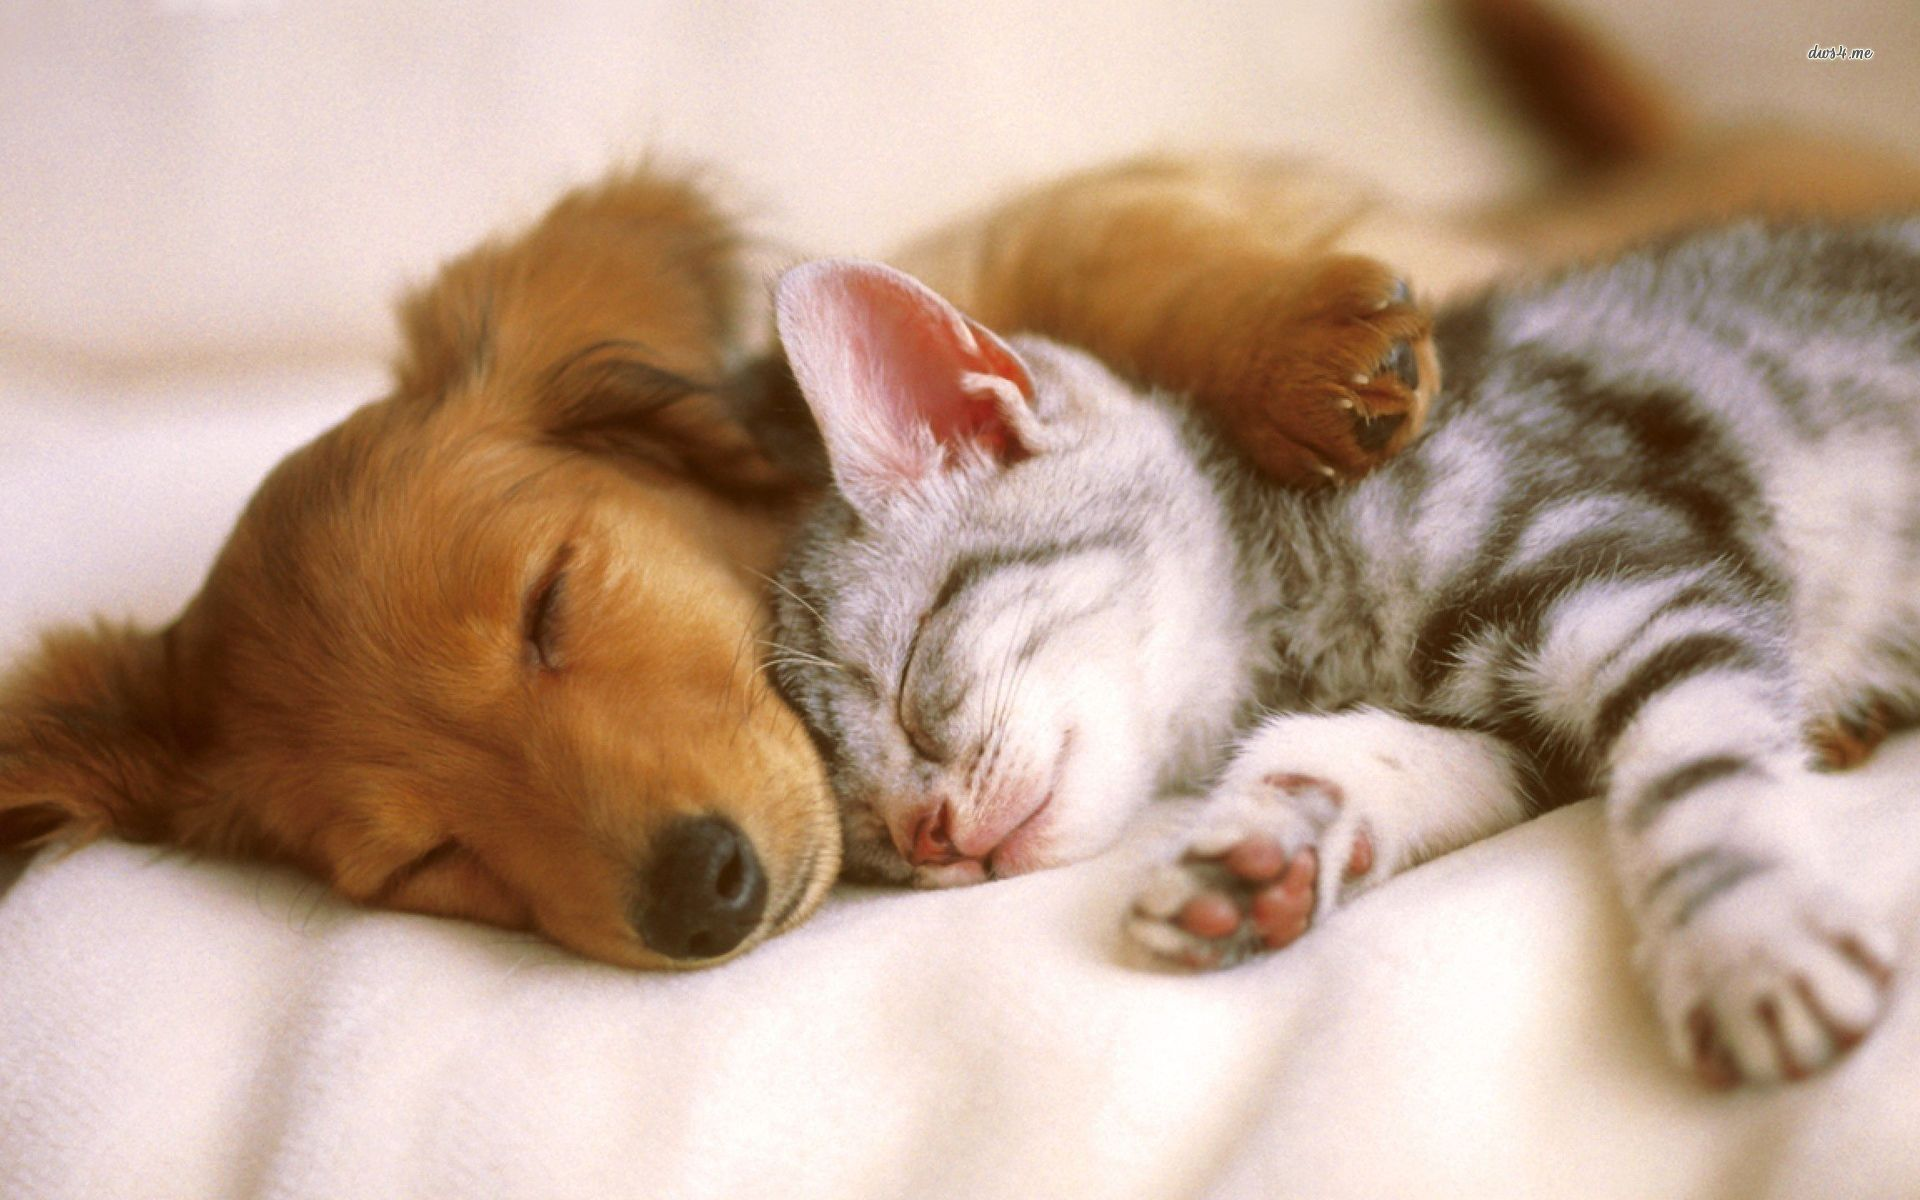 Kitten And Puppy Wallpapers Hd Resolution Cute Puppies And Kittens Kittens And Puppies Cute Animals Puppies